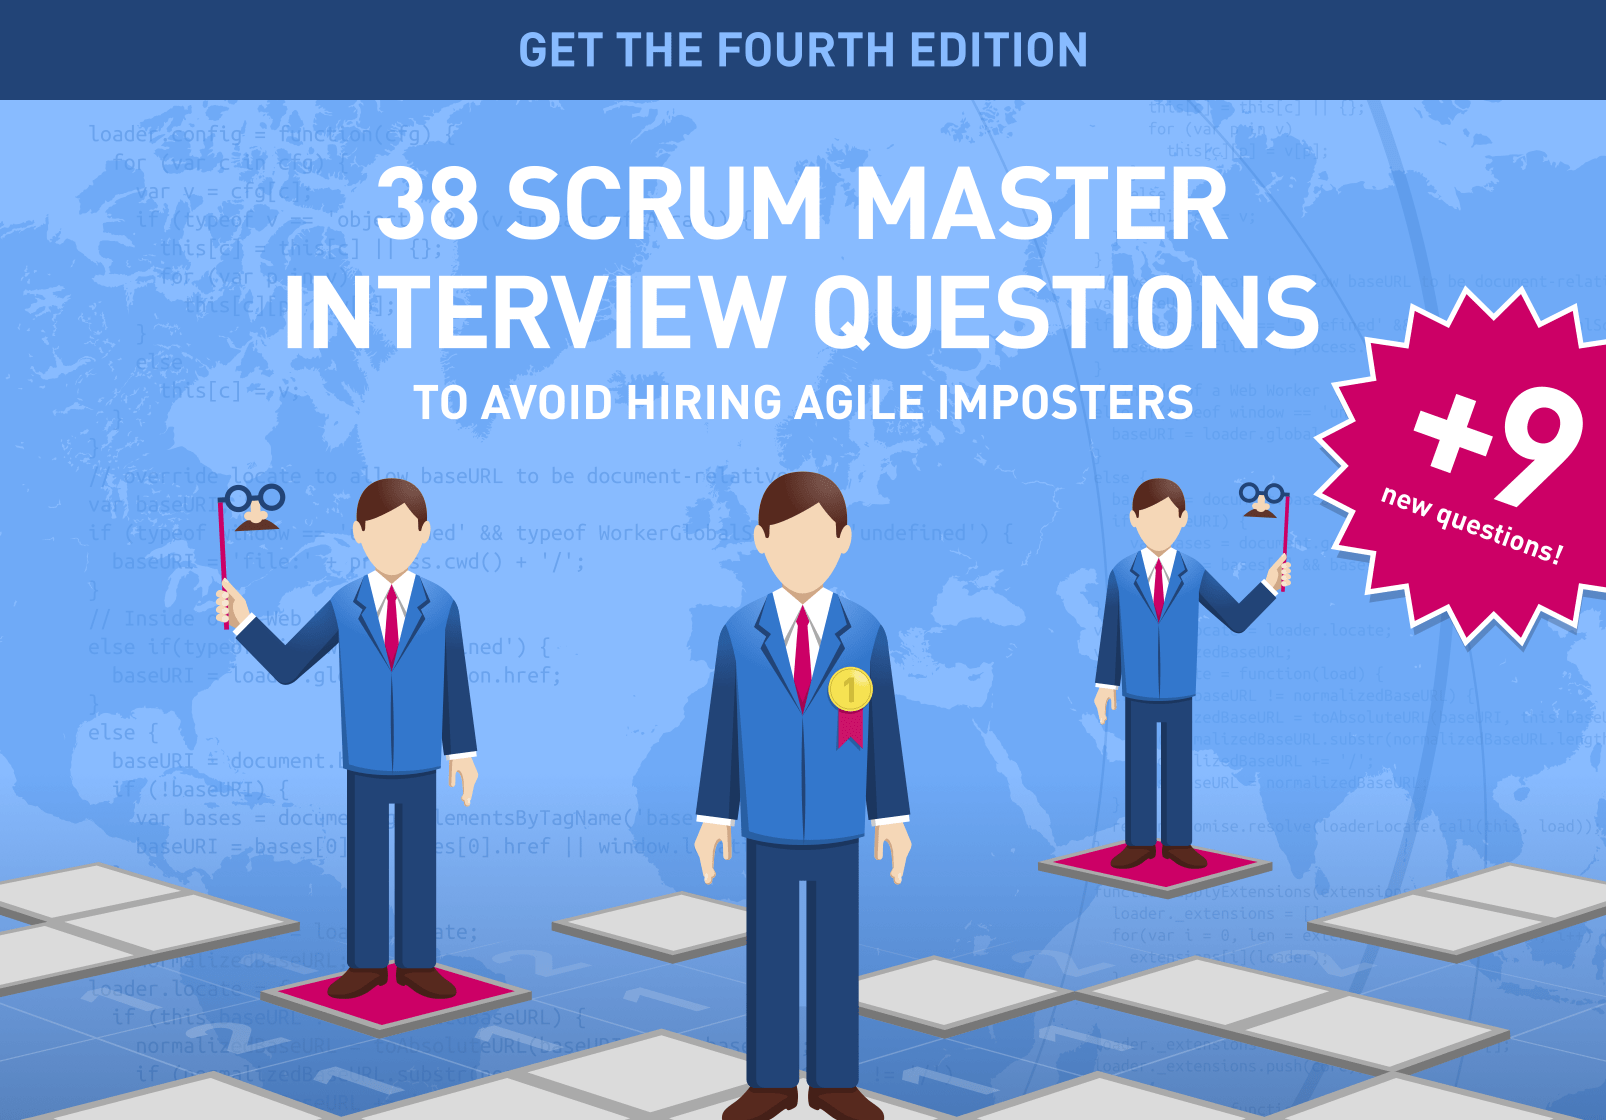 Scrum Master Interview Questions: Free Download of the Ebook